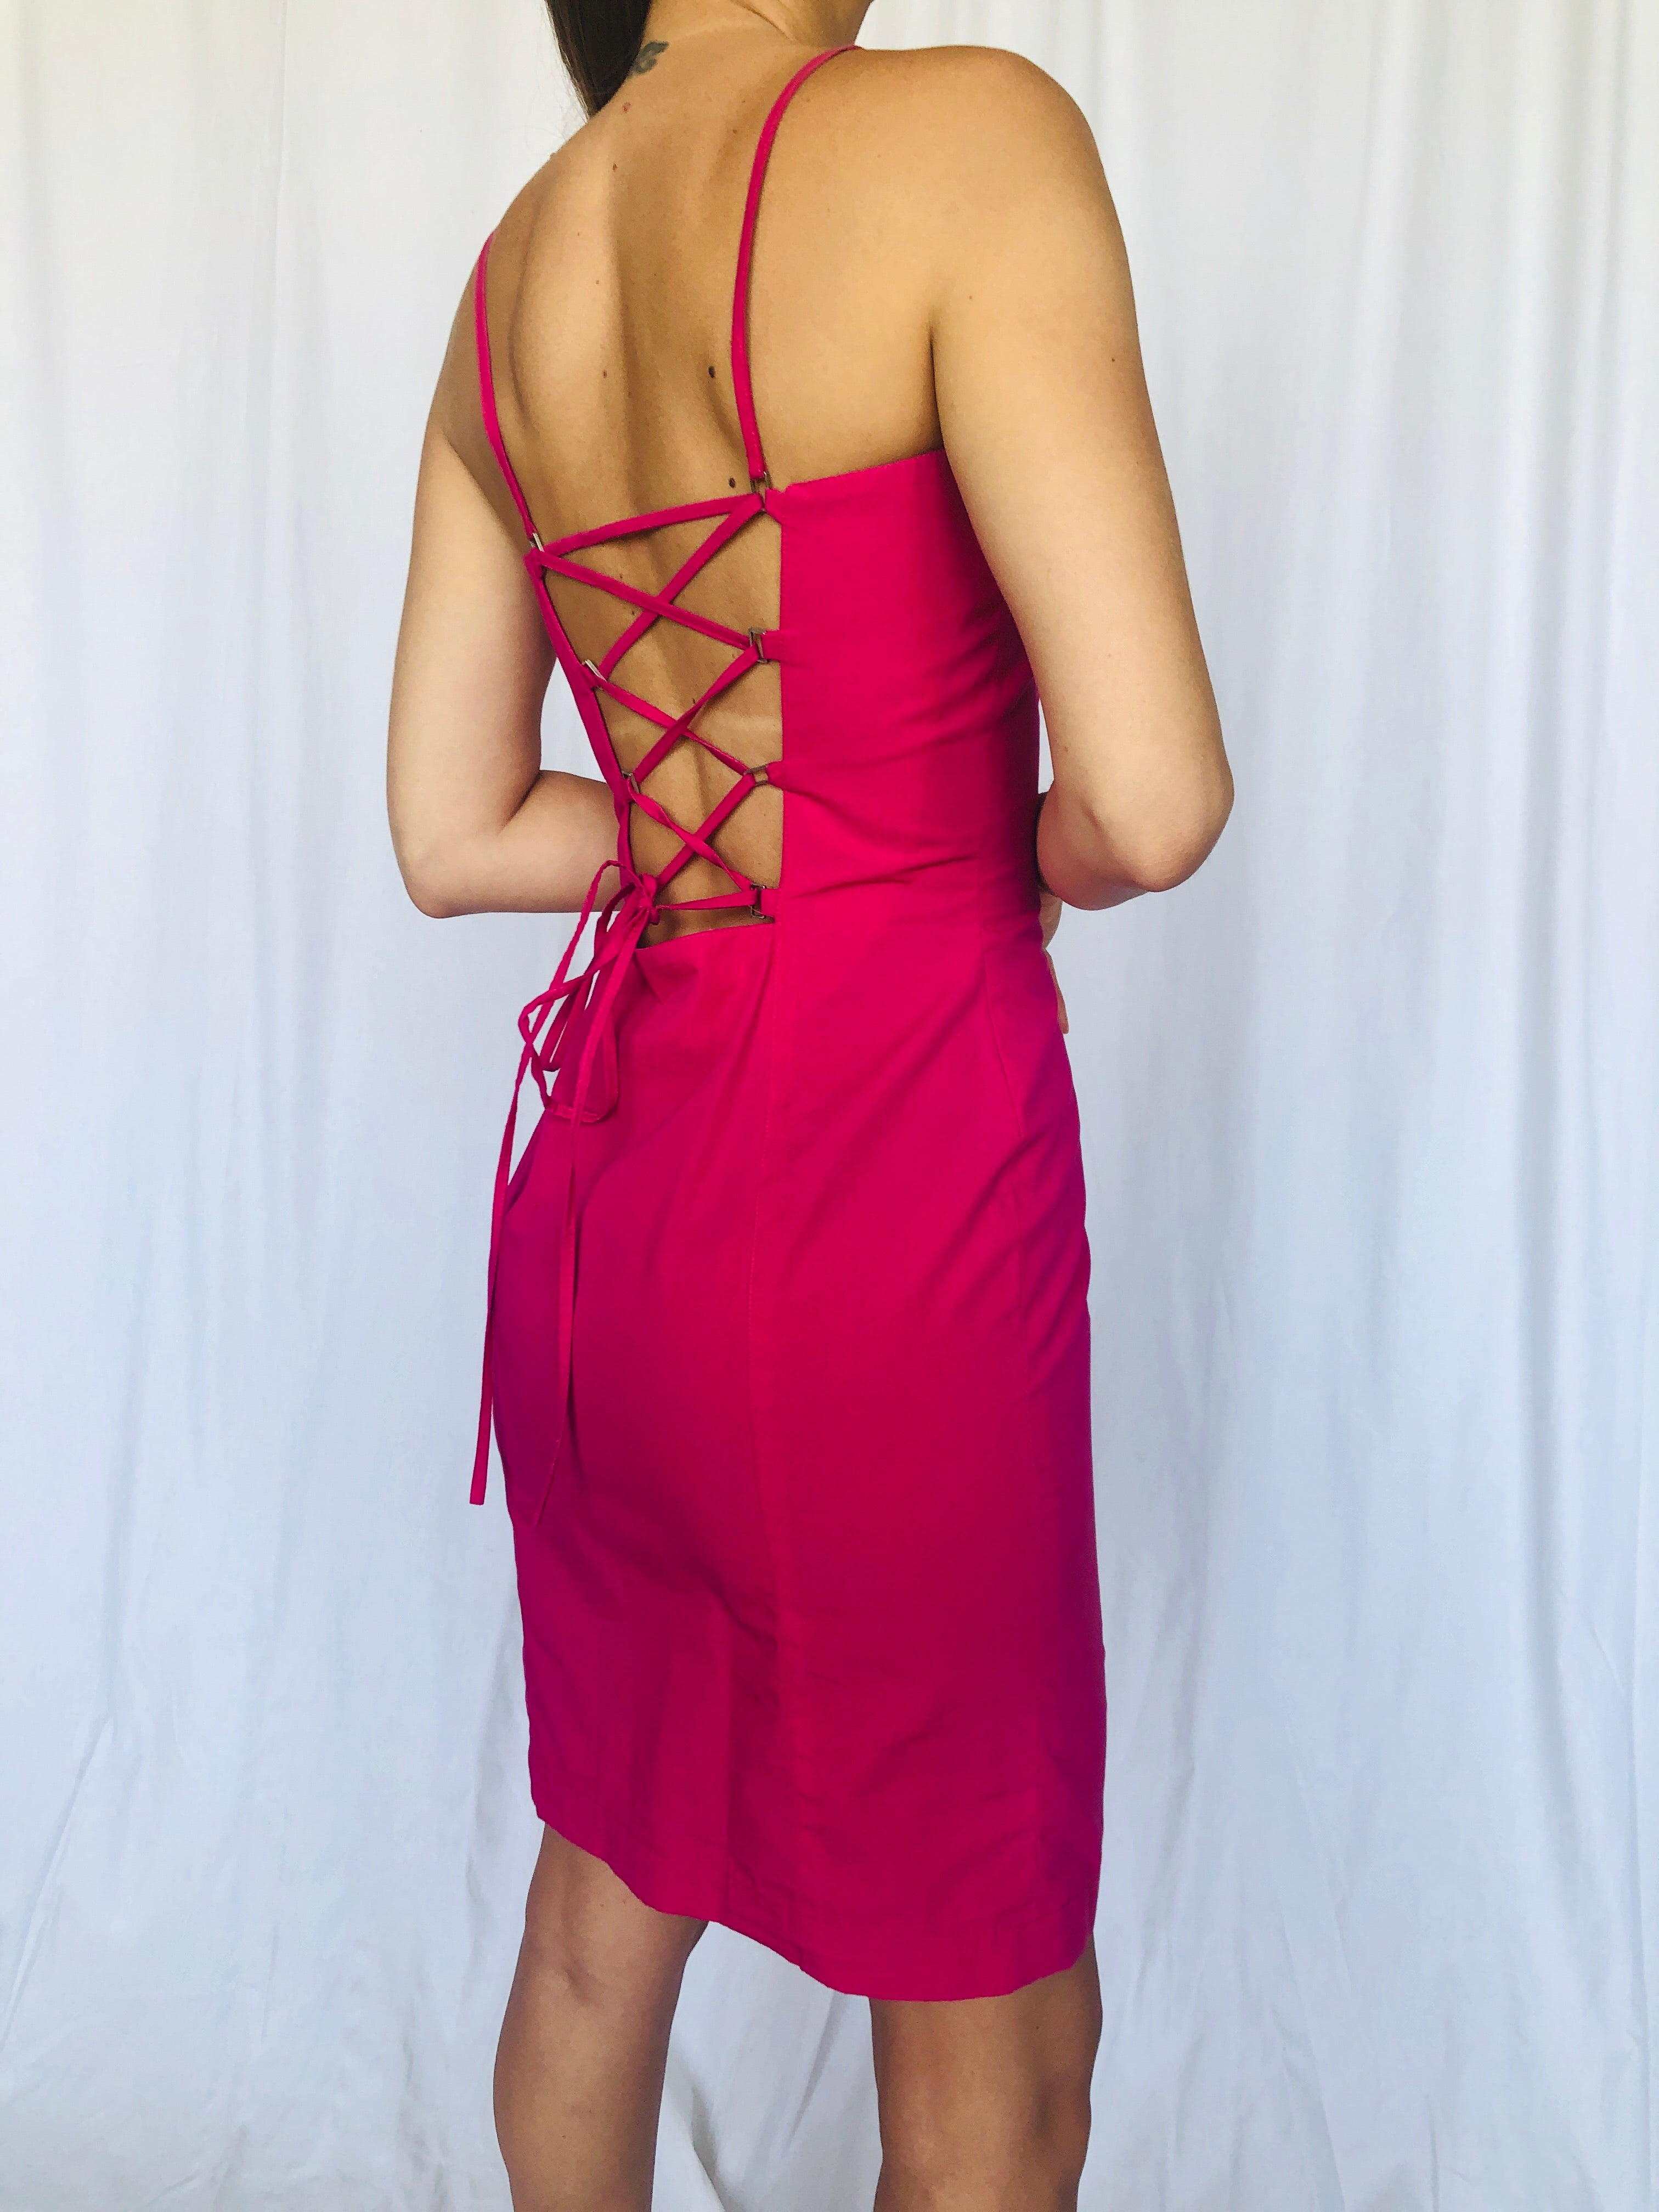 Mugler Vintage Tie Up Lace Open Back Cotton Pink Dress S XS